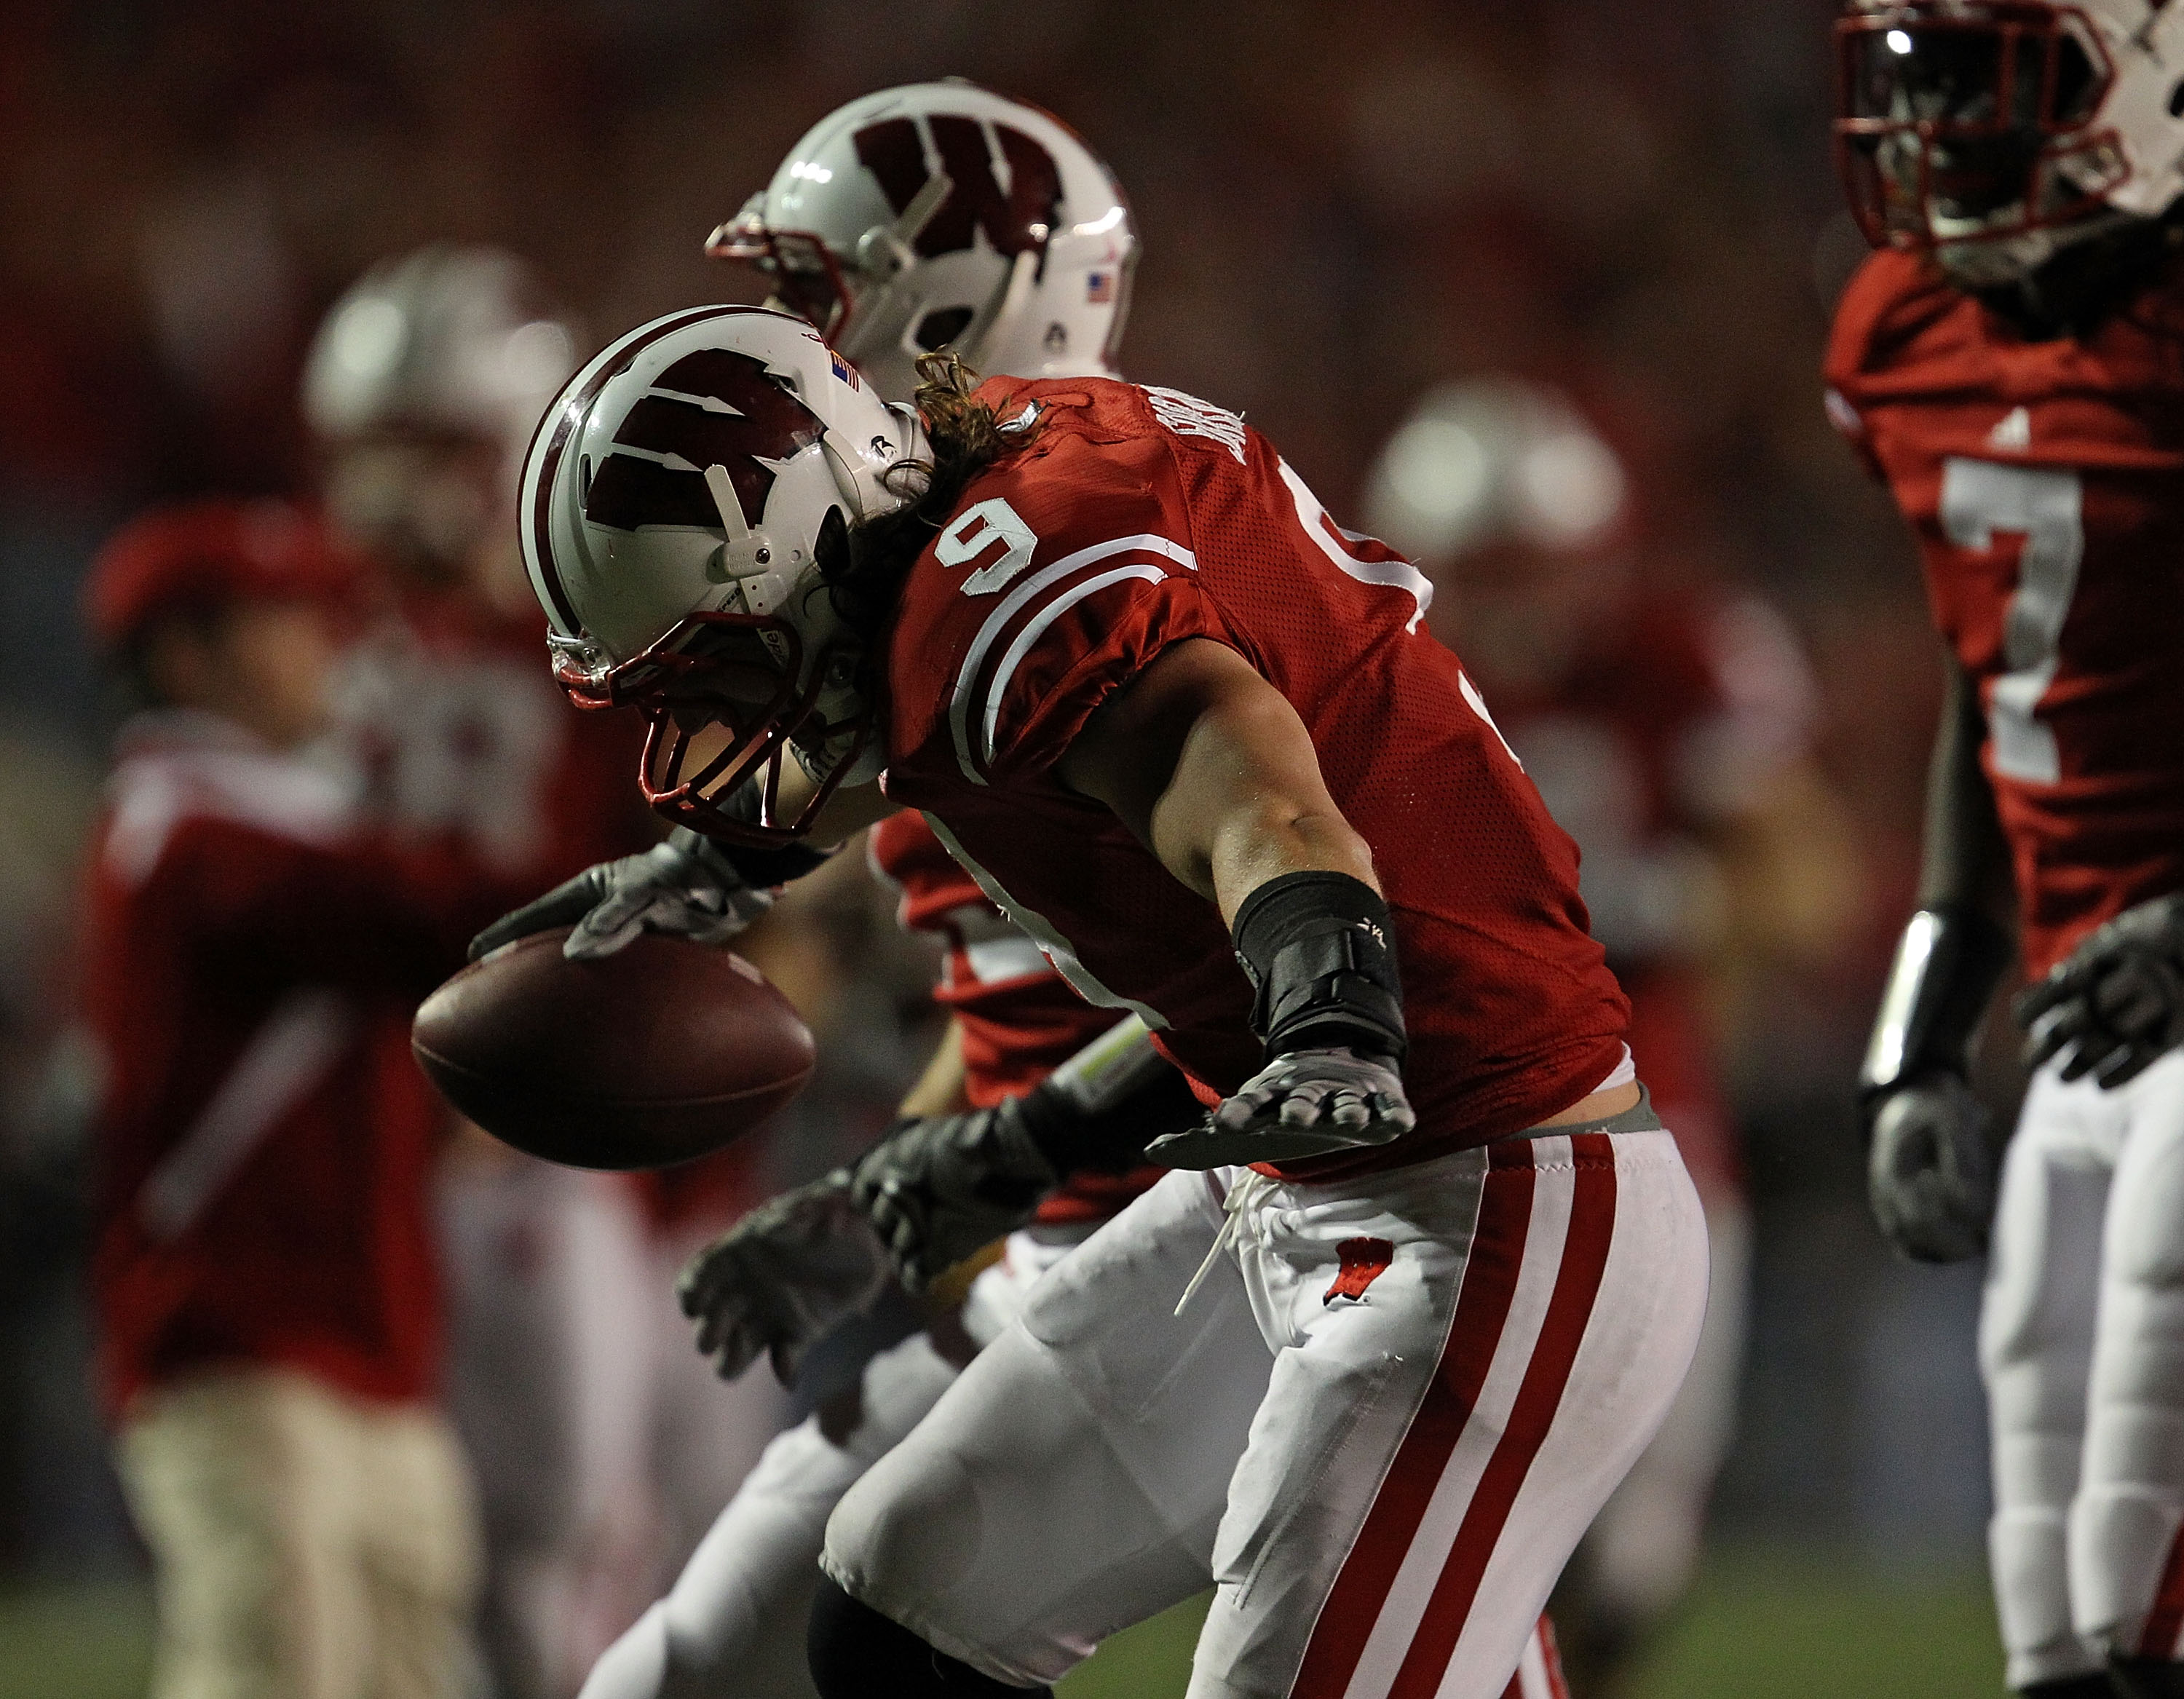 MADISON, WI - OCTOBER 16: Blake Sorensen #9 of the Wisconsin Badgers celebrates his interception near the end of a game against the Ohio State Buckeyes at Camp Randall Stadium on October 16, 2010 in Madison, Wisconsin. Wisconsin defeated Ohio State 31-18.